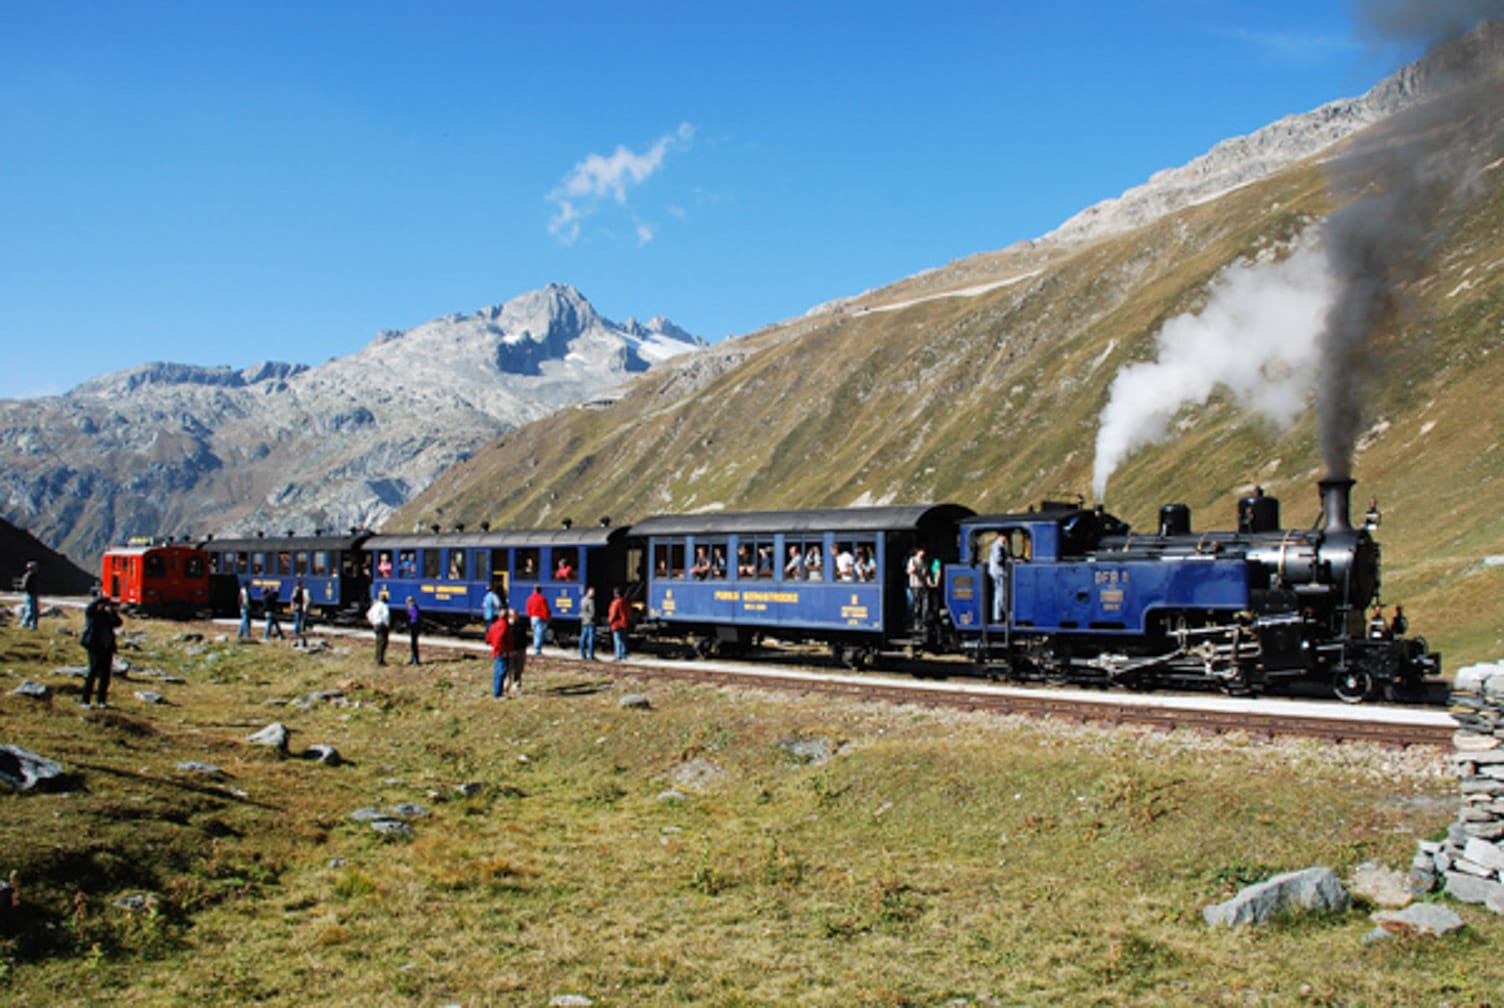 Train going up mountain on the Switzerland's Classic Trains journey